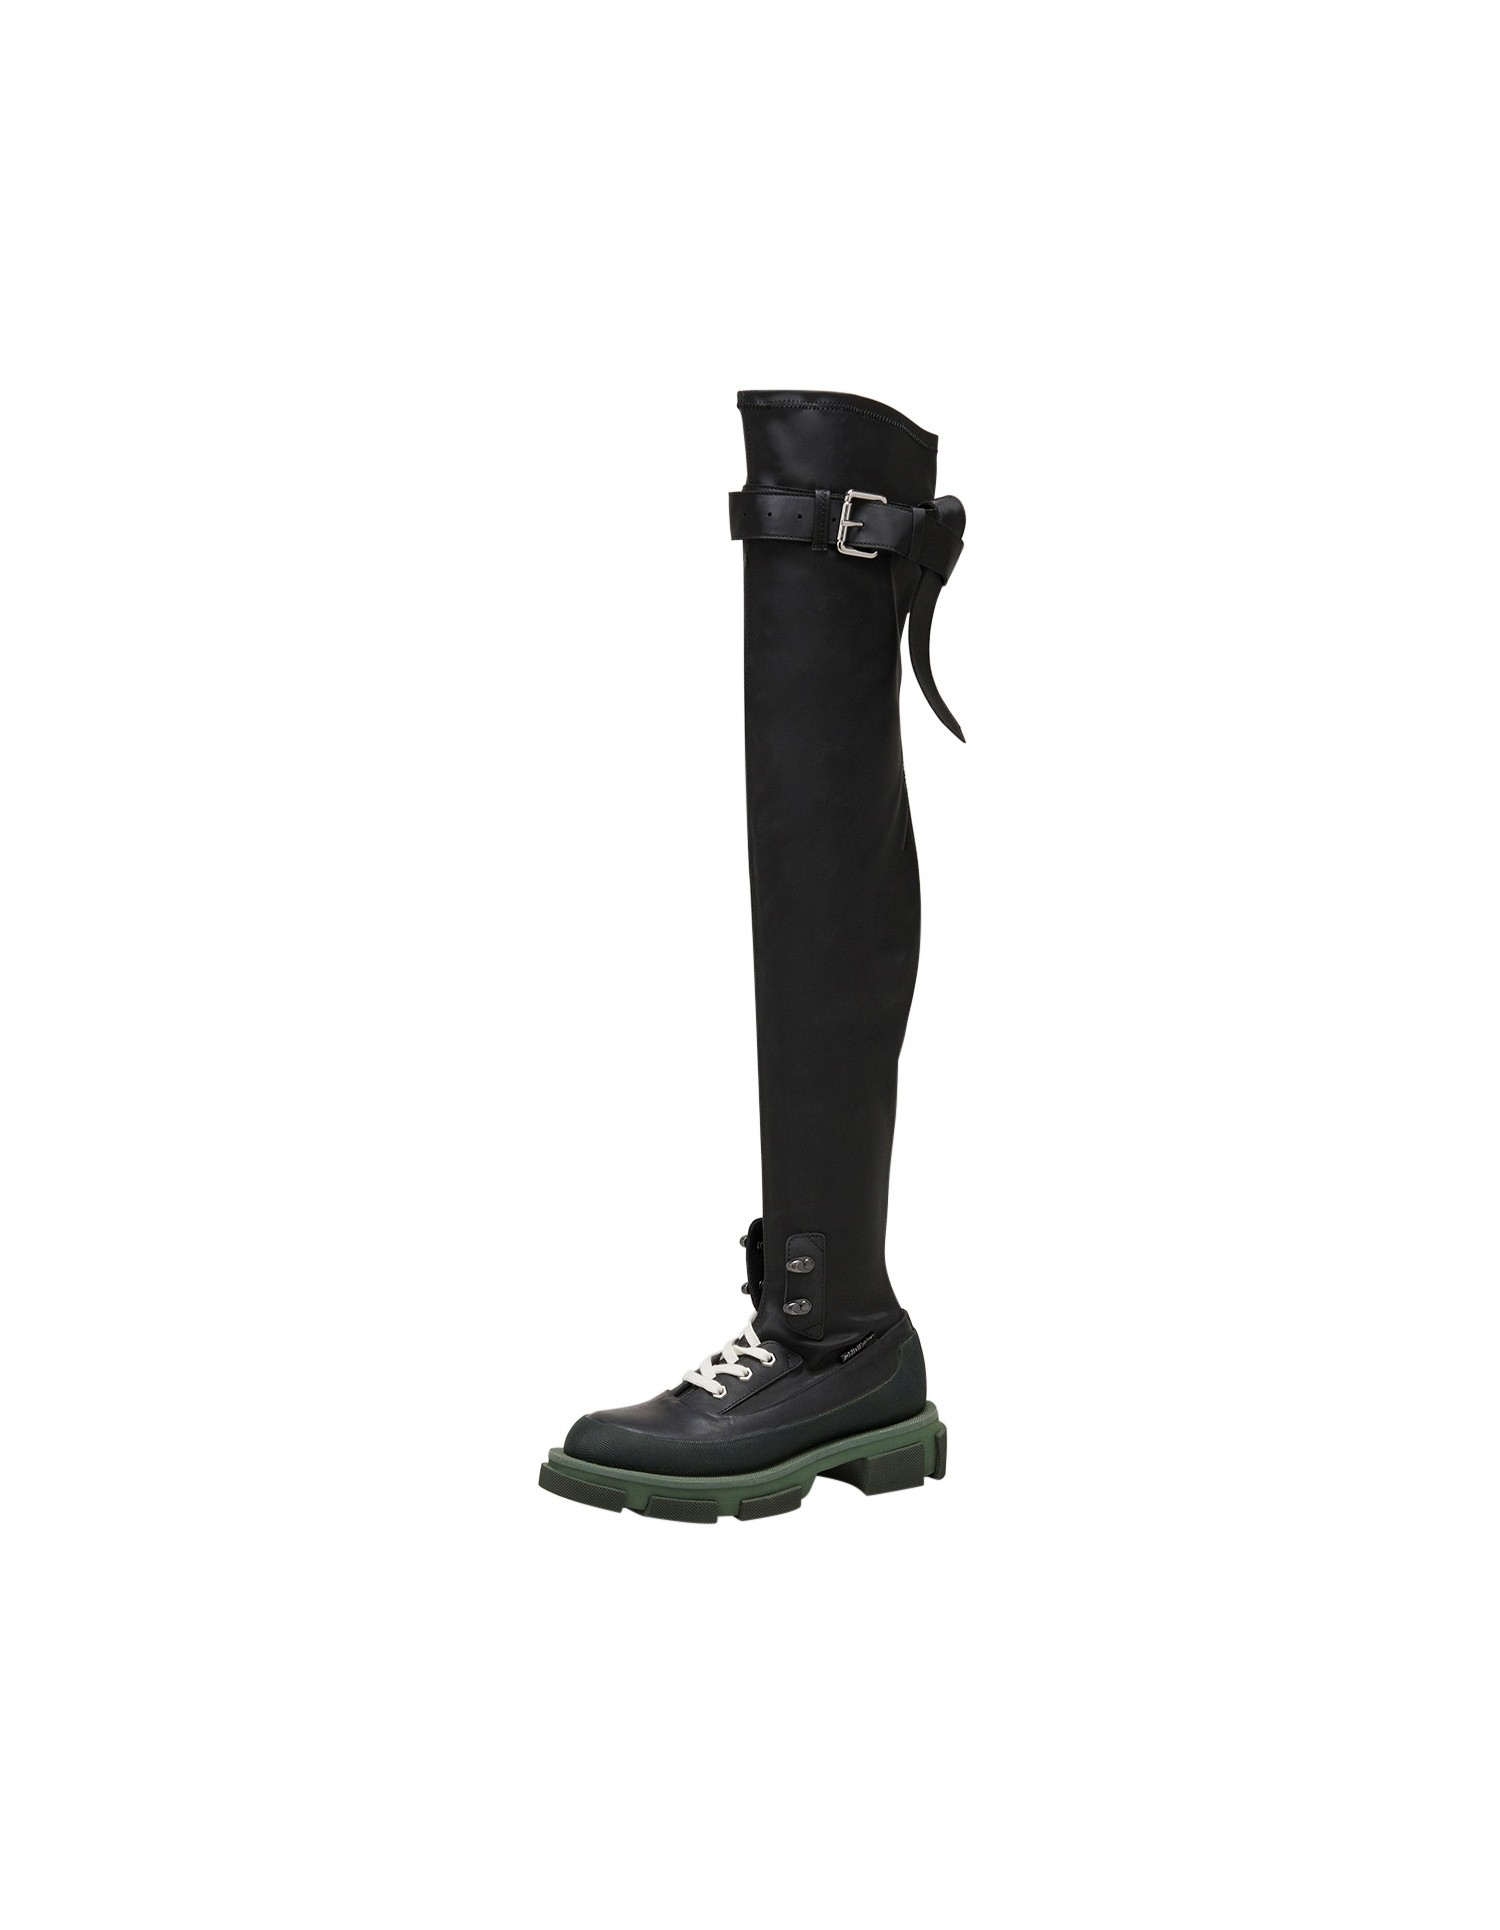 Both x MONSE Gao Thigh High Boots in Olive and Black Left Side Angle View